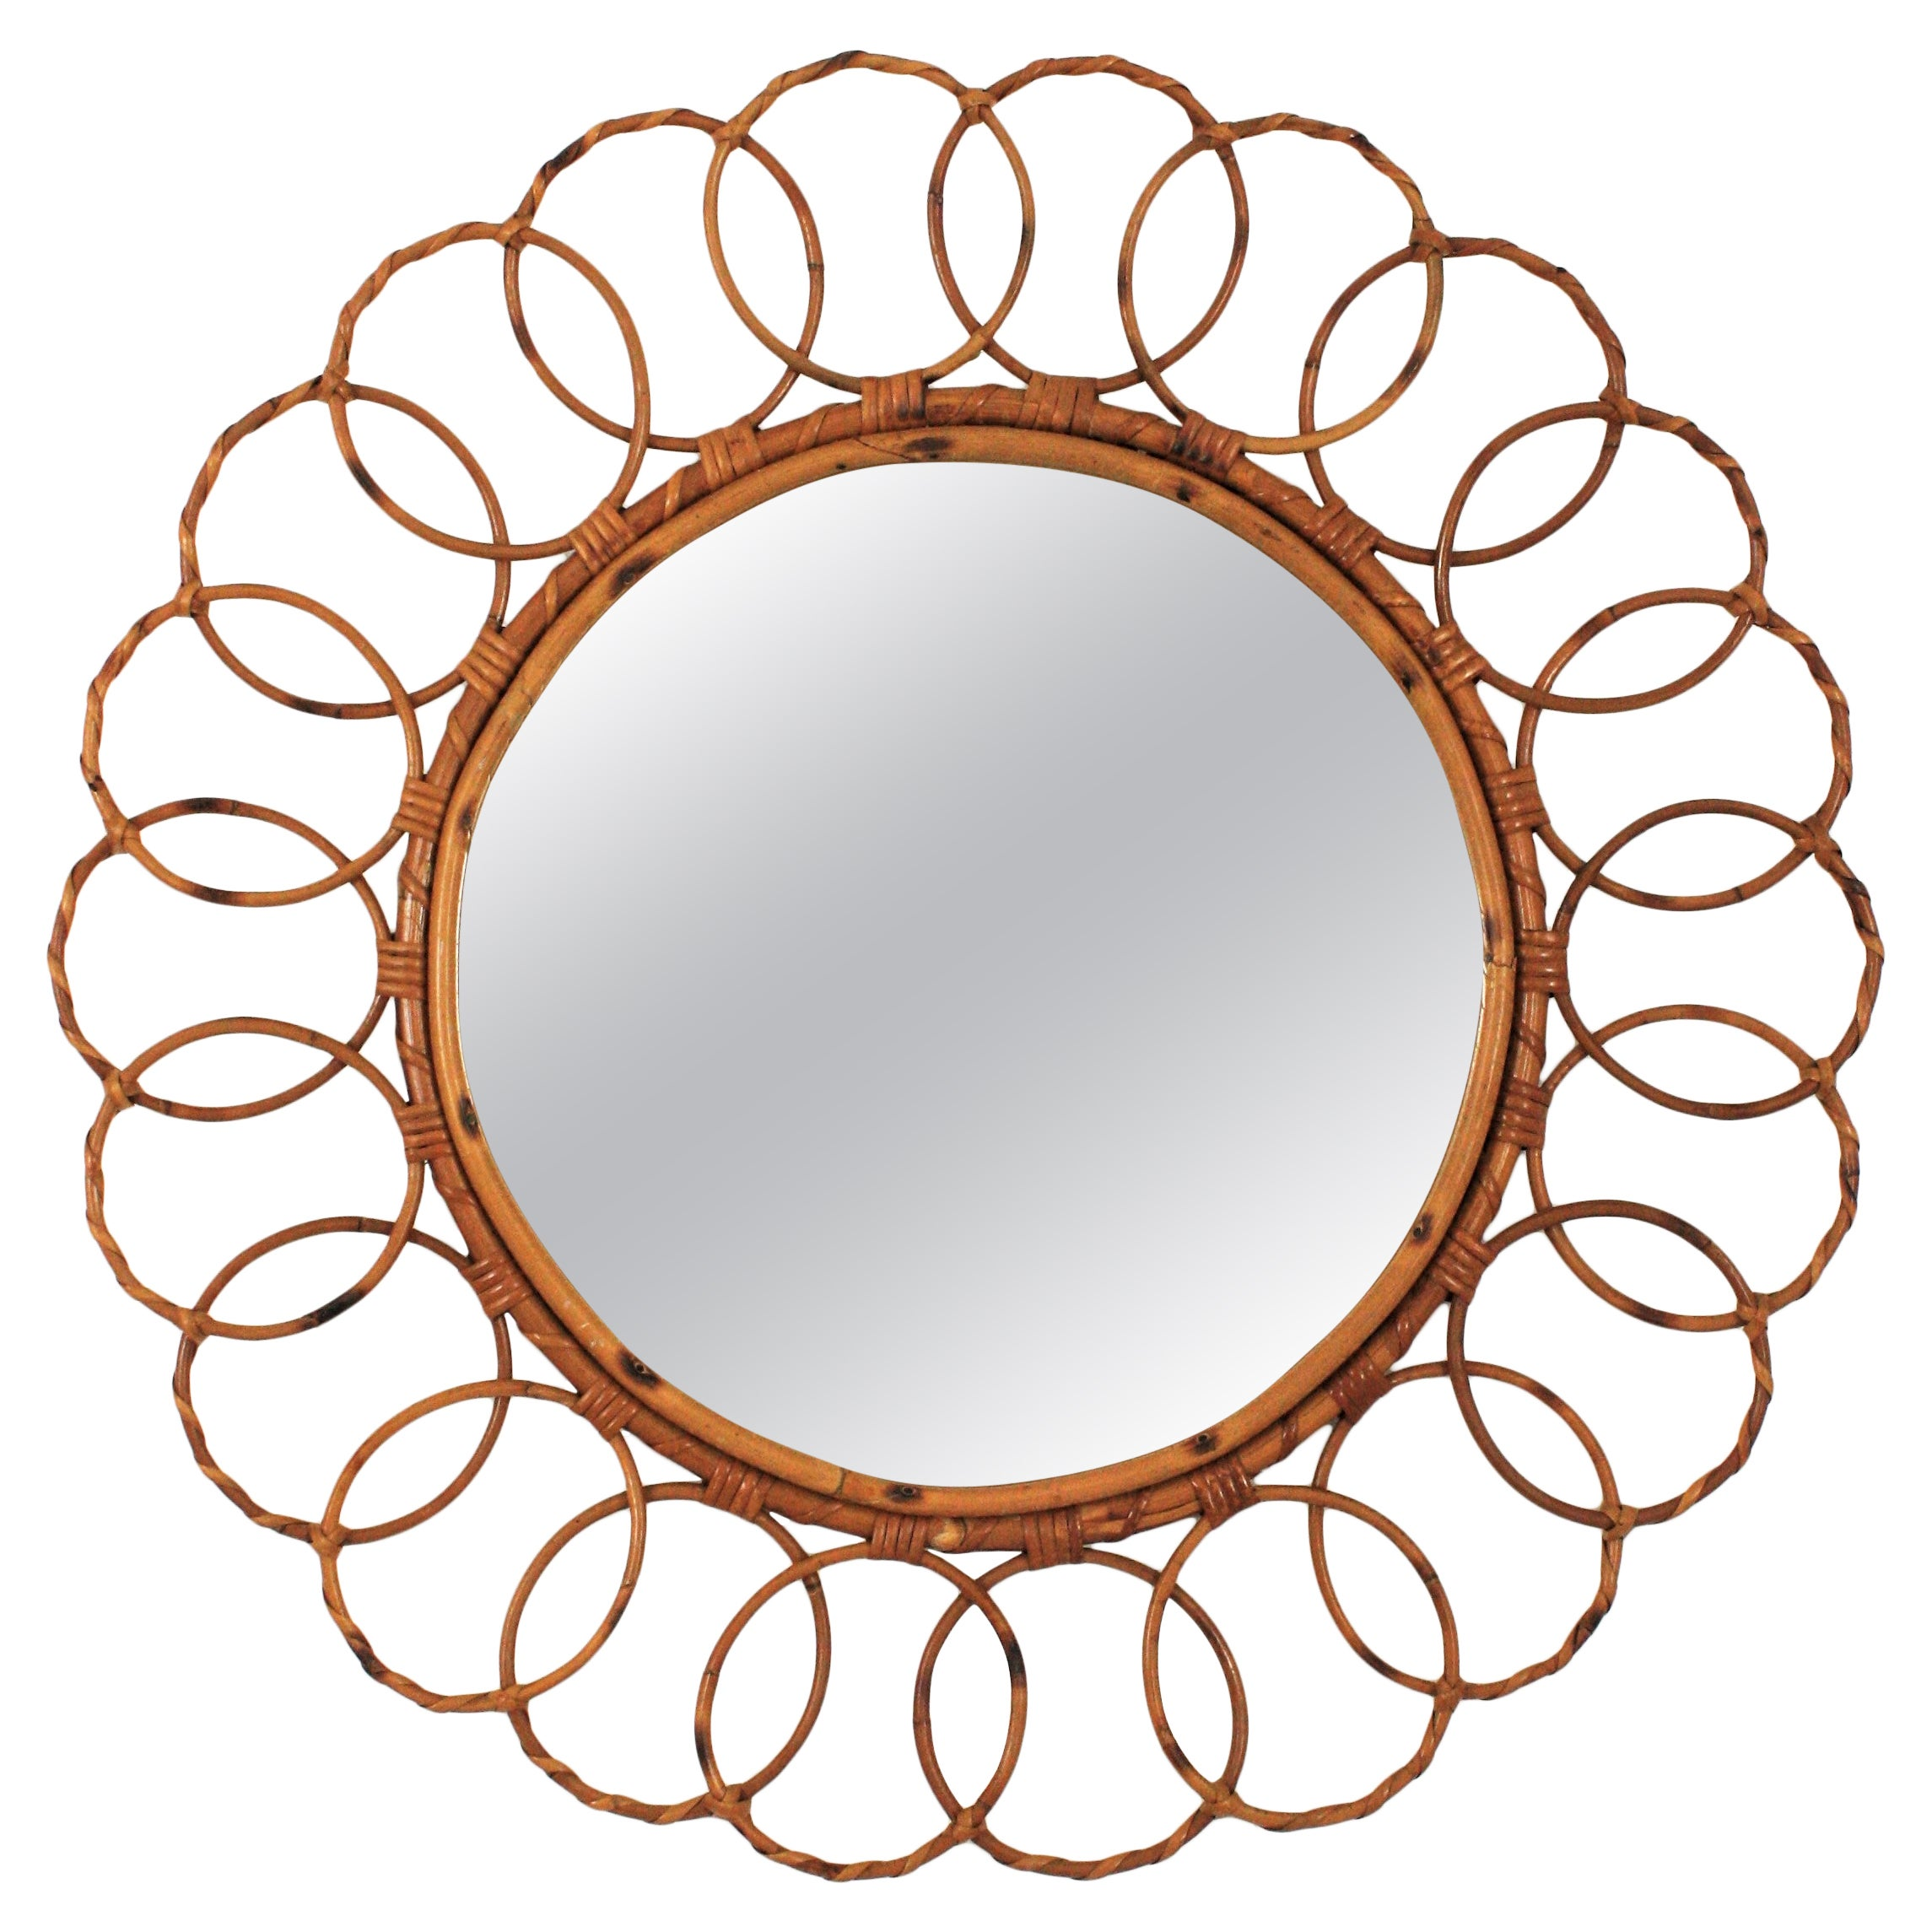 Rattan Round Mirror with Rings Frame, 1960s